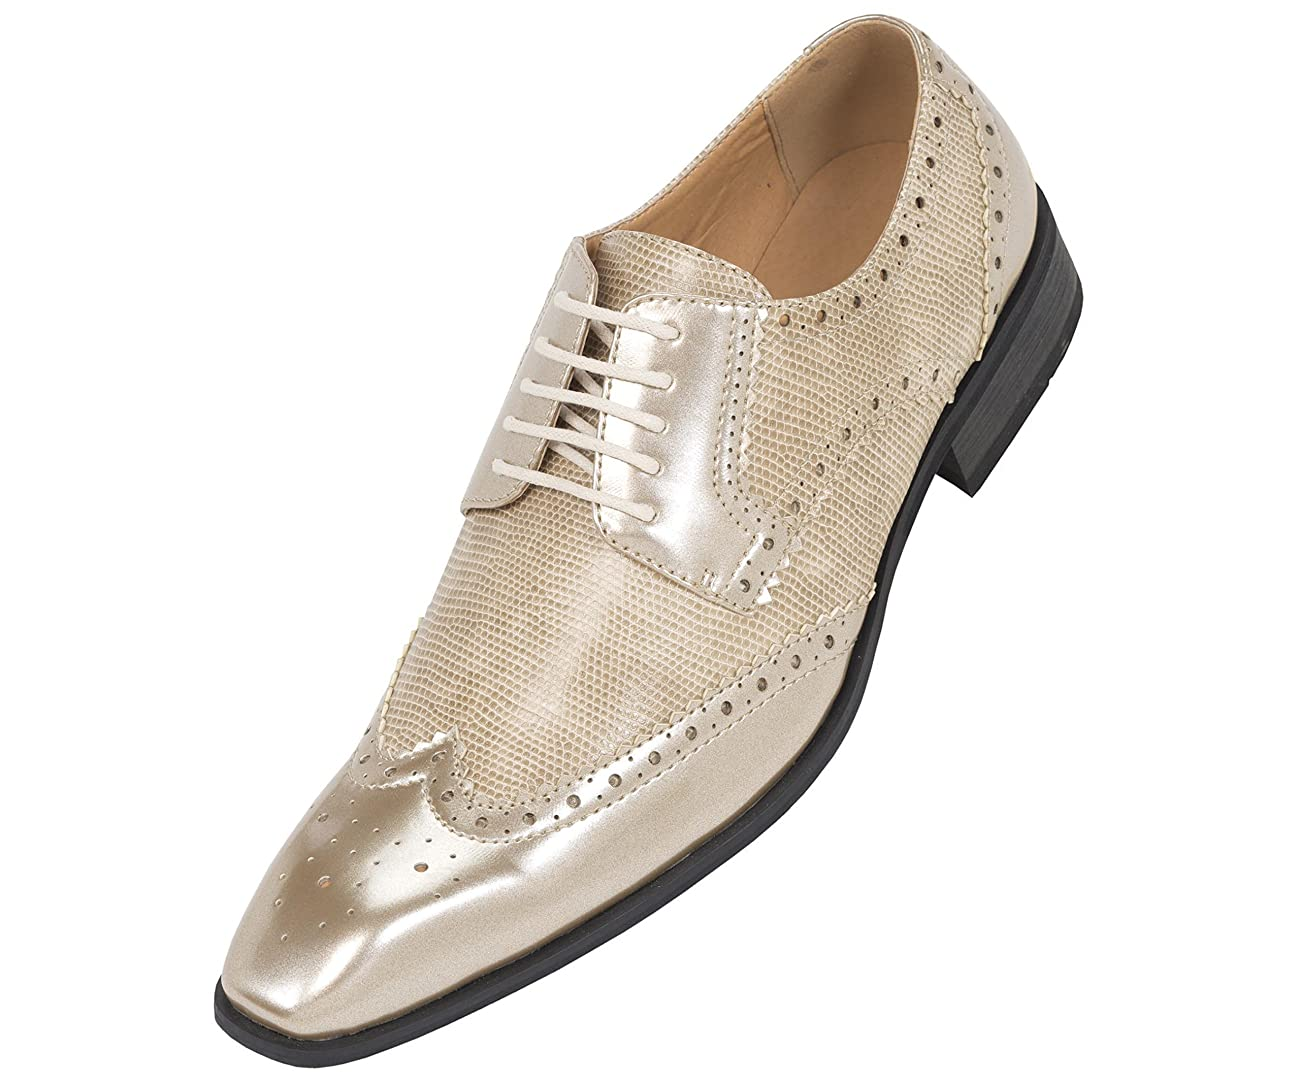 Amali Mens Two-Toned Metallic Antique Gold Classic Dress Shoe with Wing-Tip and Perforated Detailing: Style 7800 Metallic Antique Gold-035 0